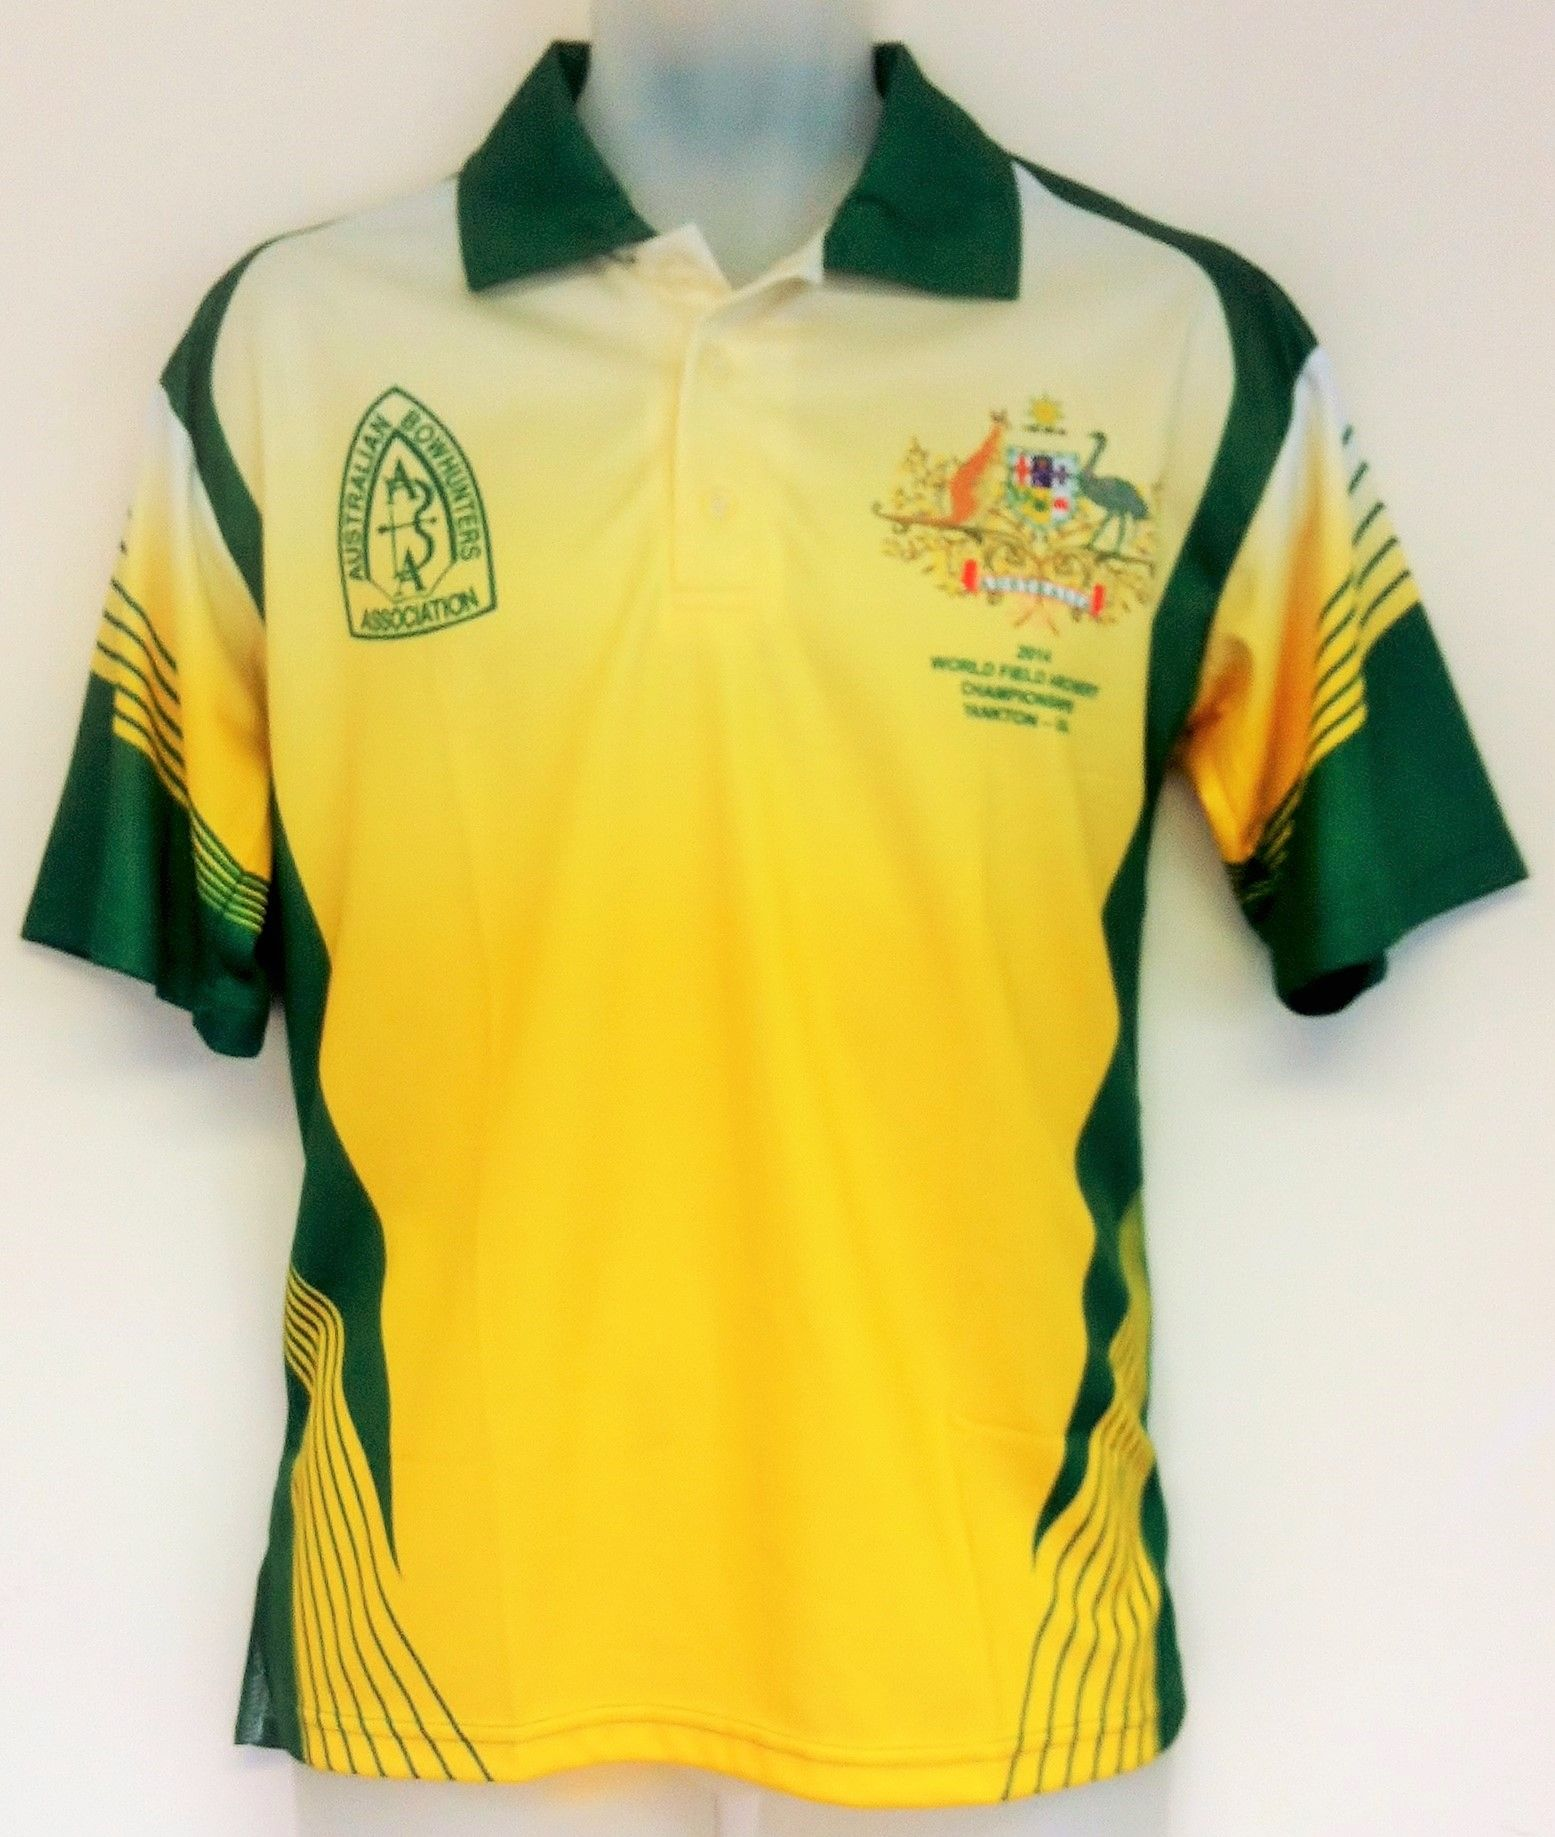 Design t shirt netball - Here Is A Yellow And Green Sublimated Polo Shirt Designed For The Australian Bow Hunters Association